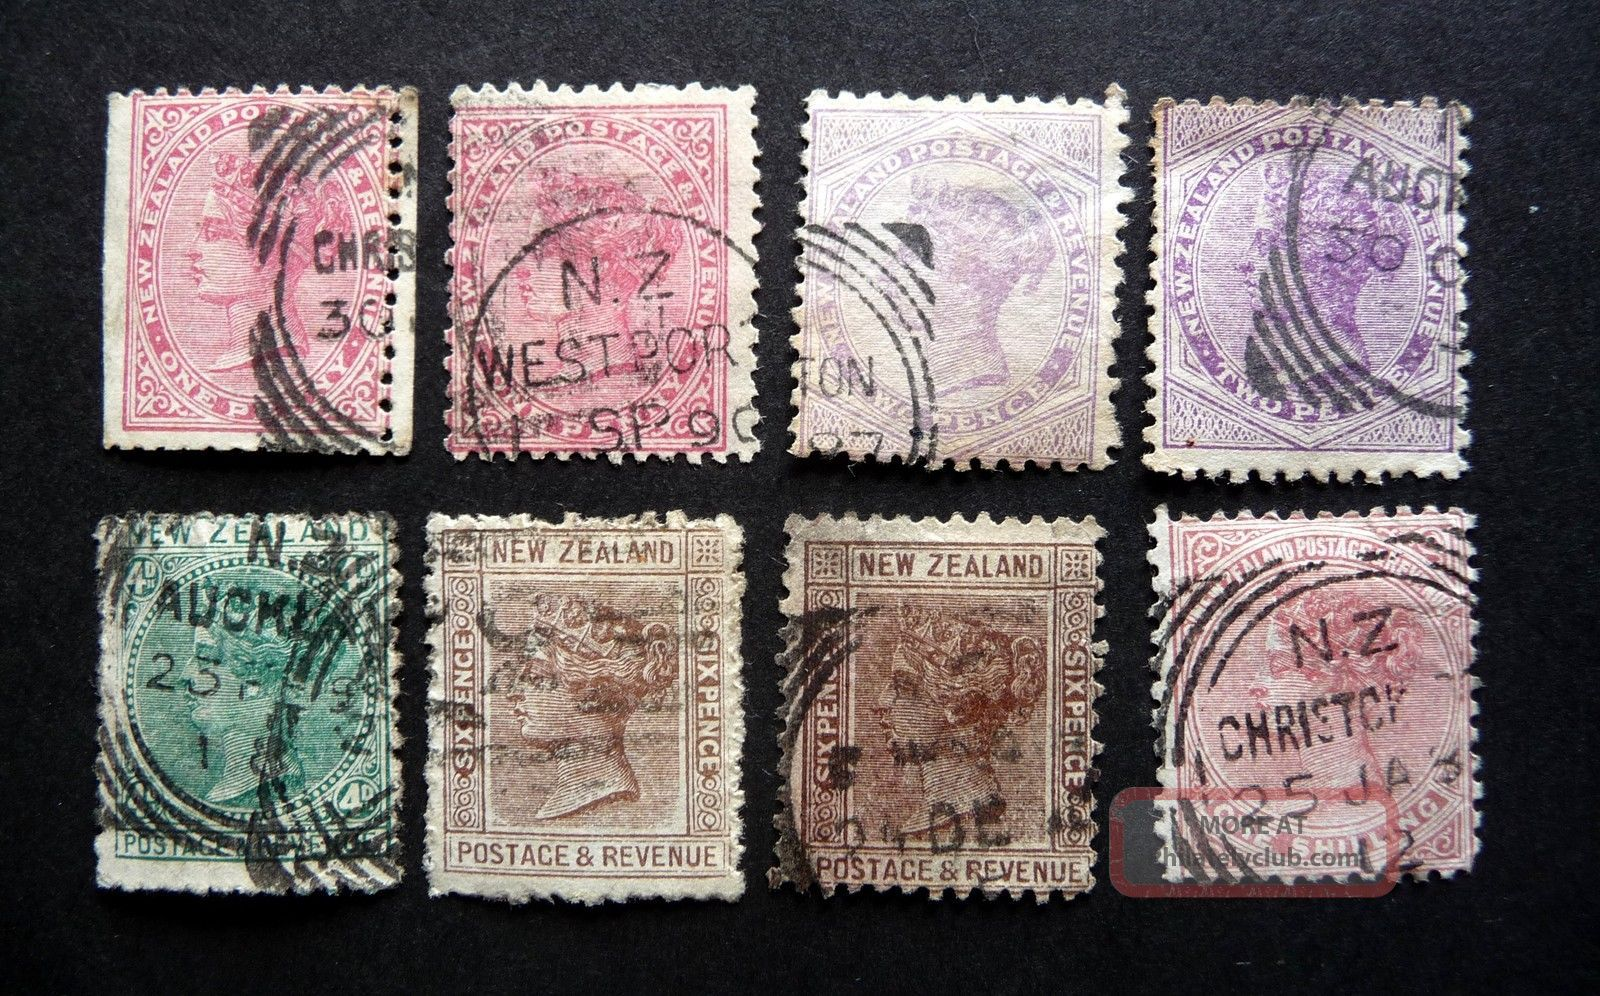 N Z Qvic 1882 - 86 Definitives Perf 12 X 11 1/2 Sg187 - 8/90 - 1/93? As Seen Australia & Oceania photo